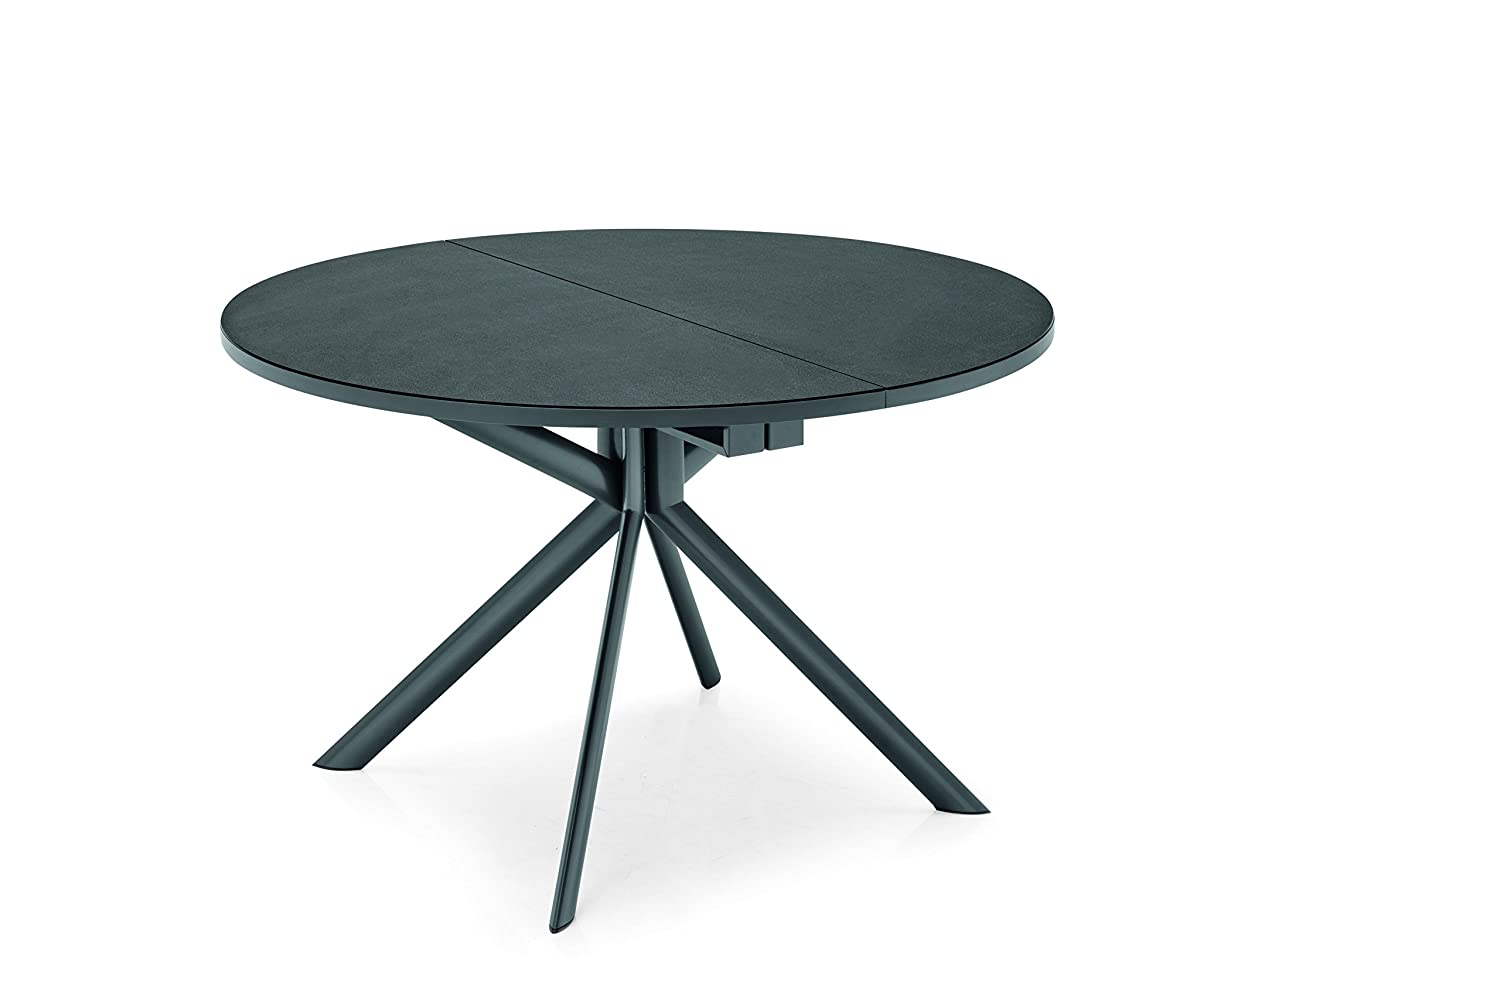 Amazon.com: Connubia Giove Round Extending Table with ...